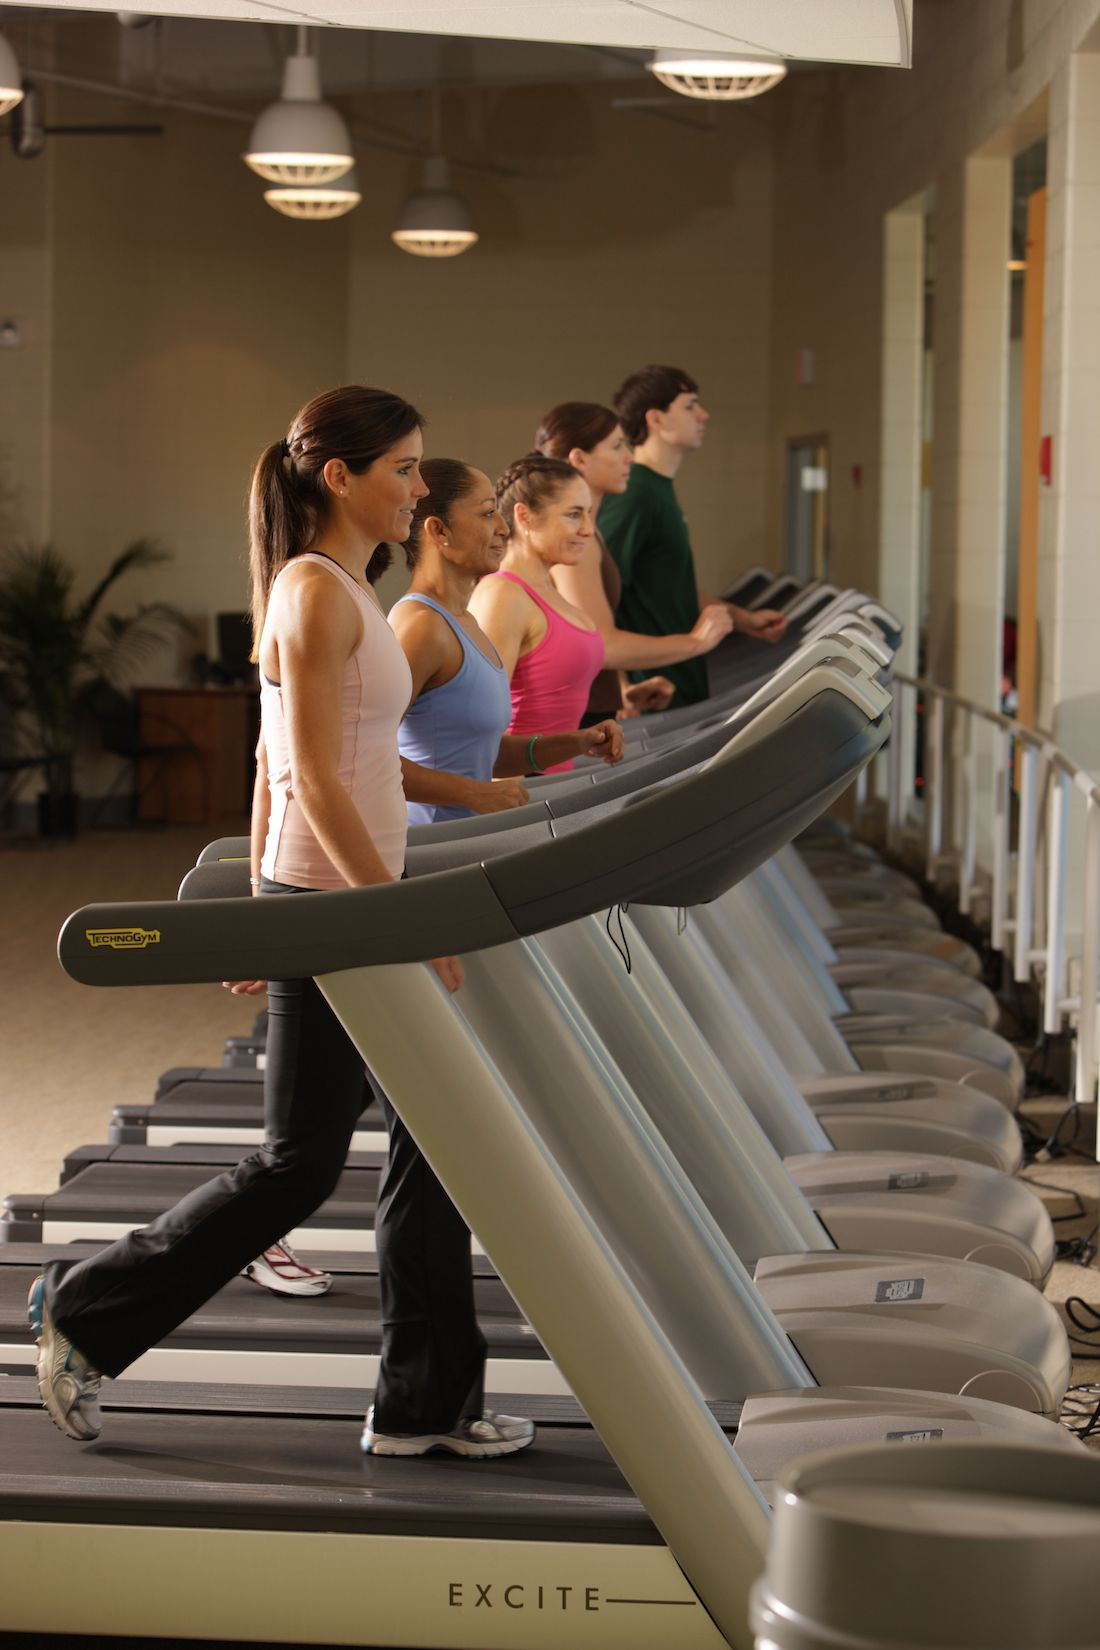 Treadmill Workouts, My Gym Trainer 2.